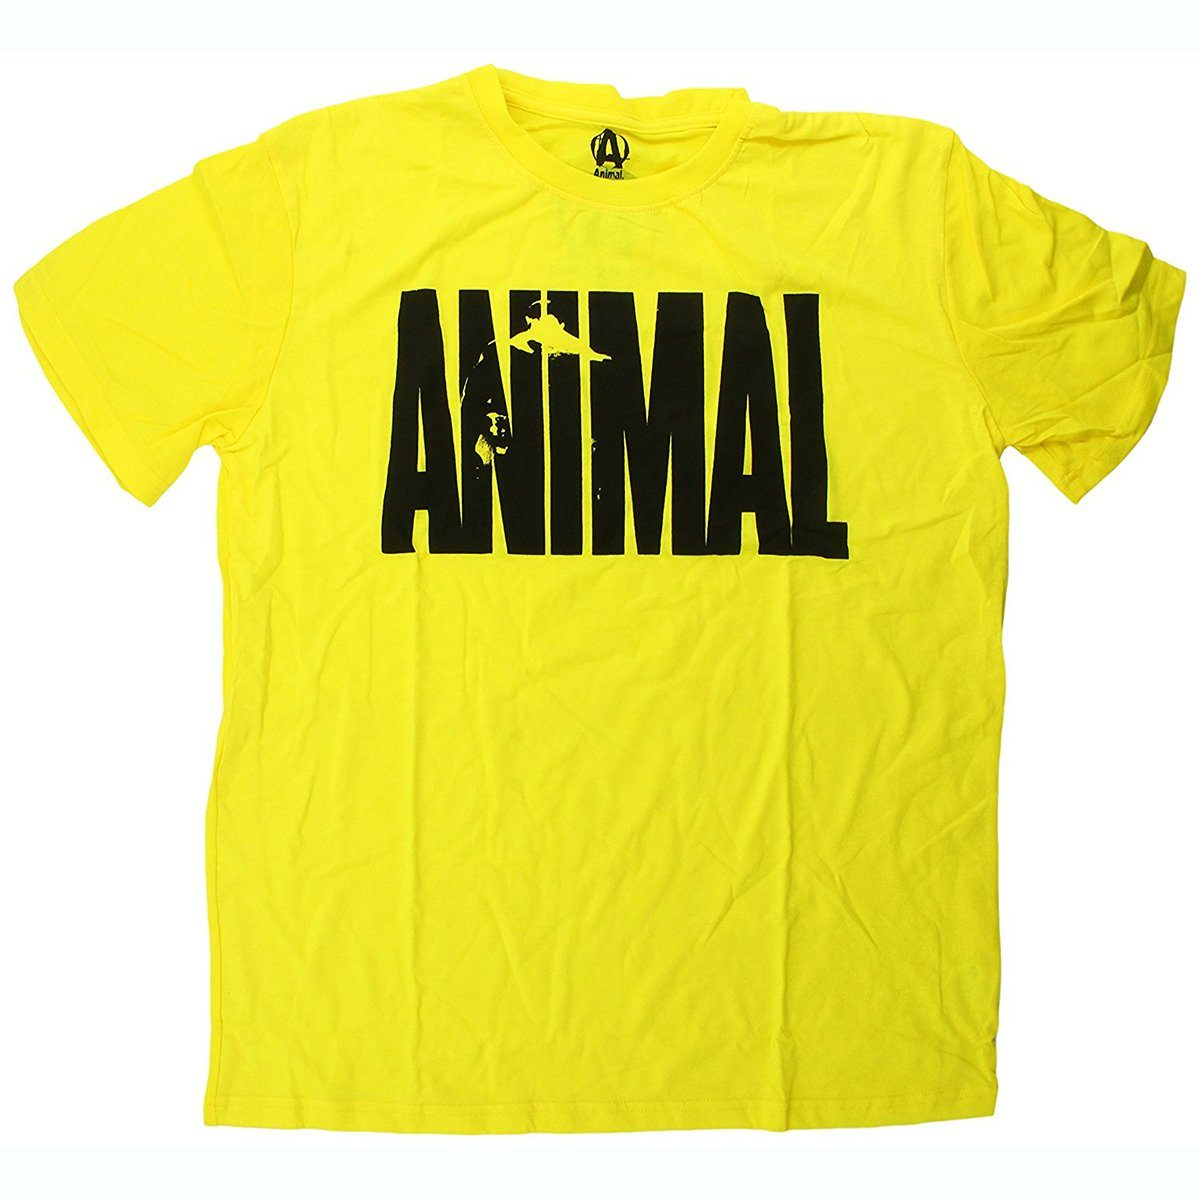 Universal Animal Iconic Tee Yellow Medium Fitness Accessories and Apparel Universal  (1058204123179)